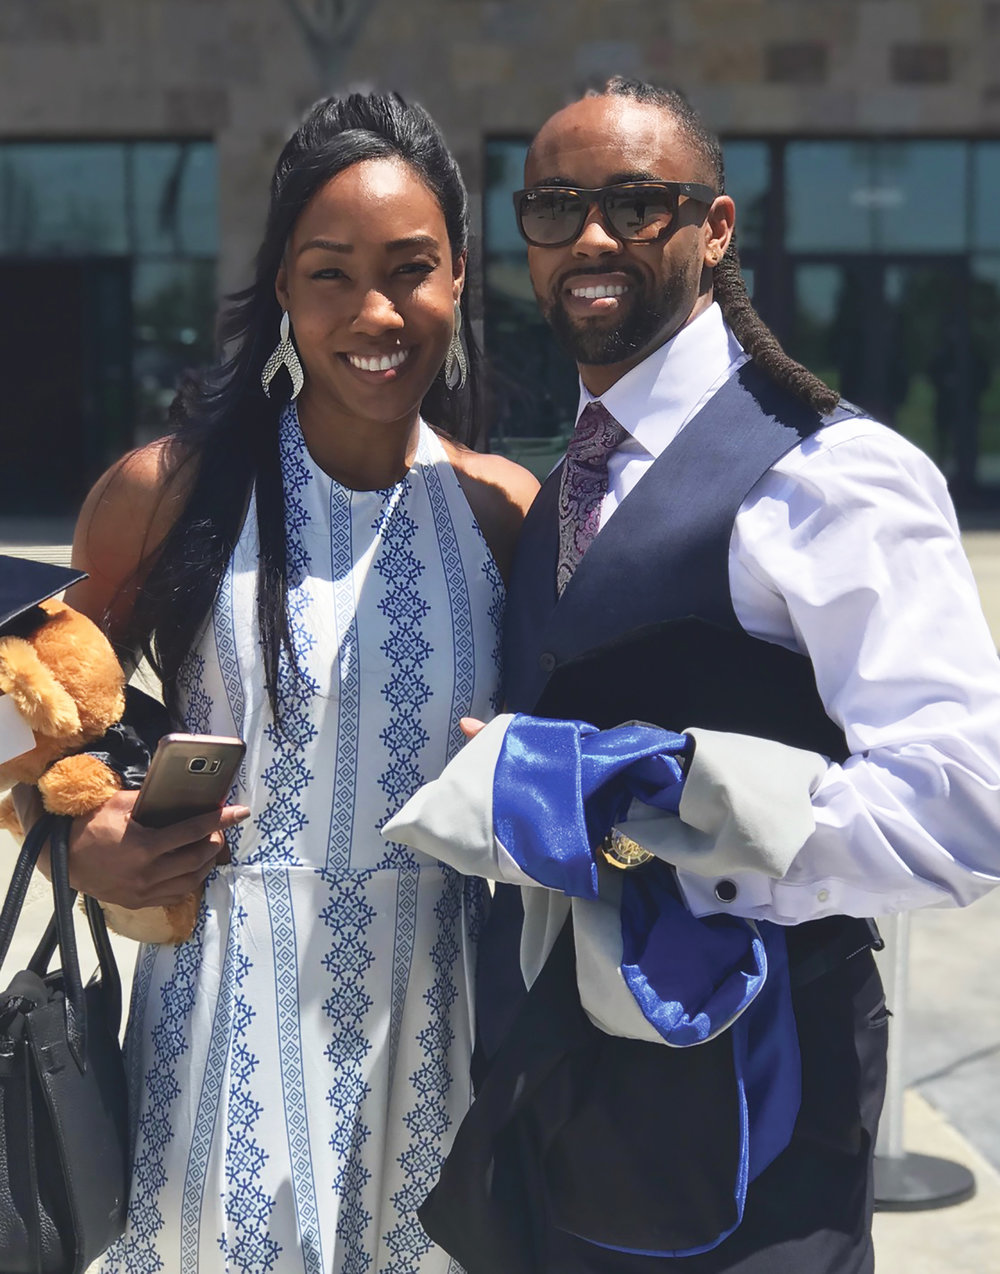 Dr. Corinthian A. Tyson and his fiancé Dr. Erica Smith. (Courtesy Photo)